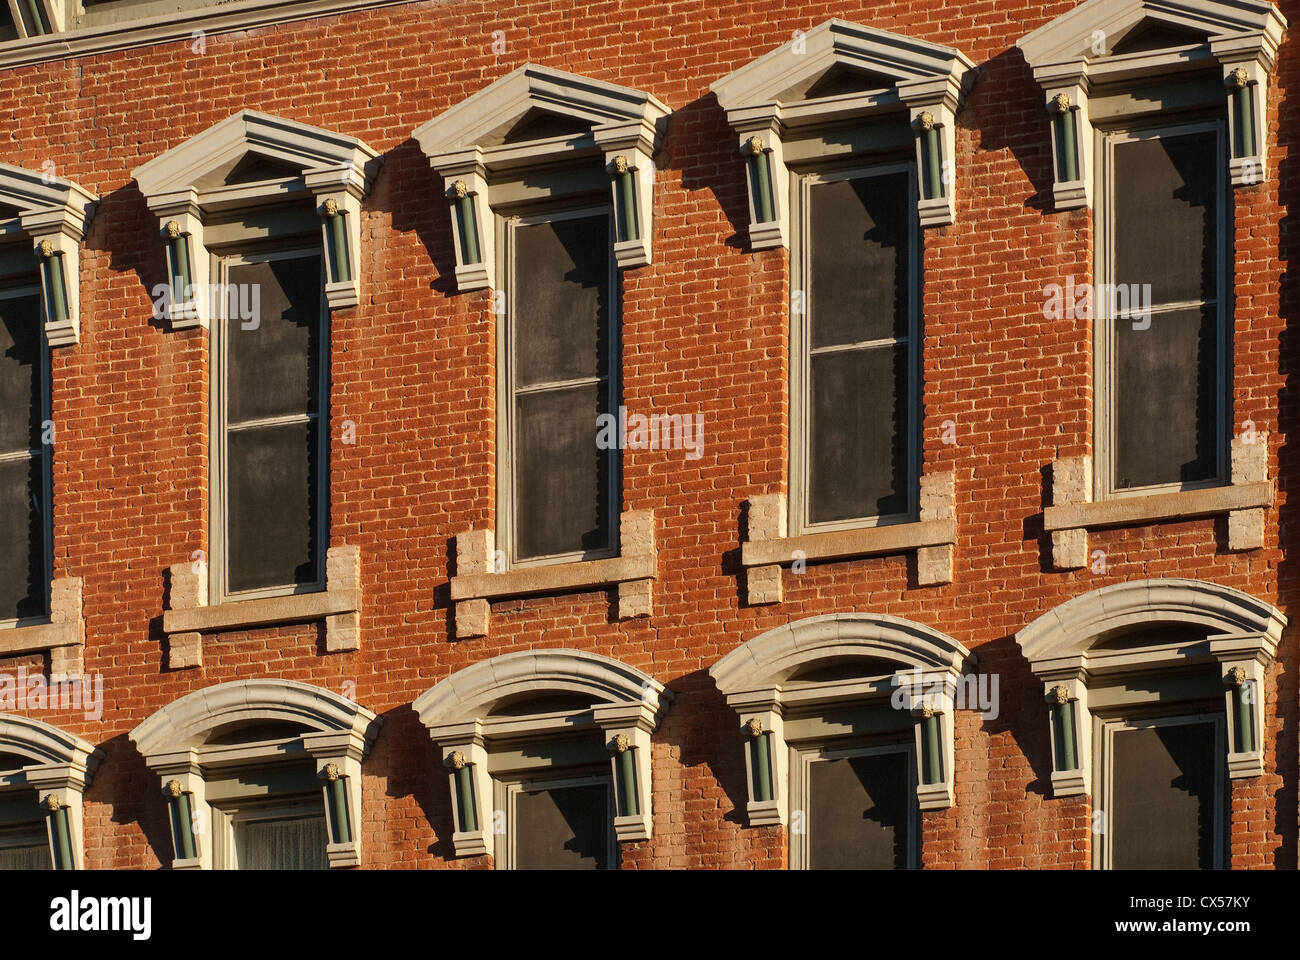 Close-up of windows at historic Plaza Hotel in Las Vegas, New Mexico, USA Stock Photo